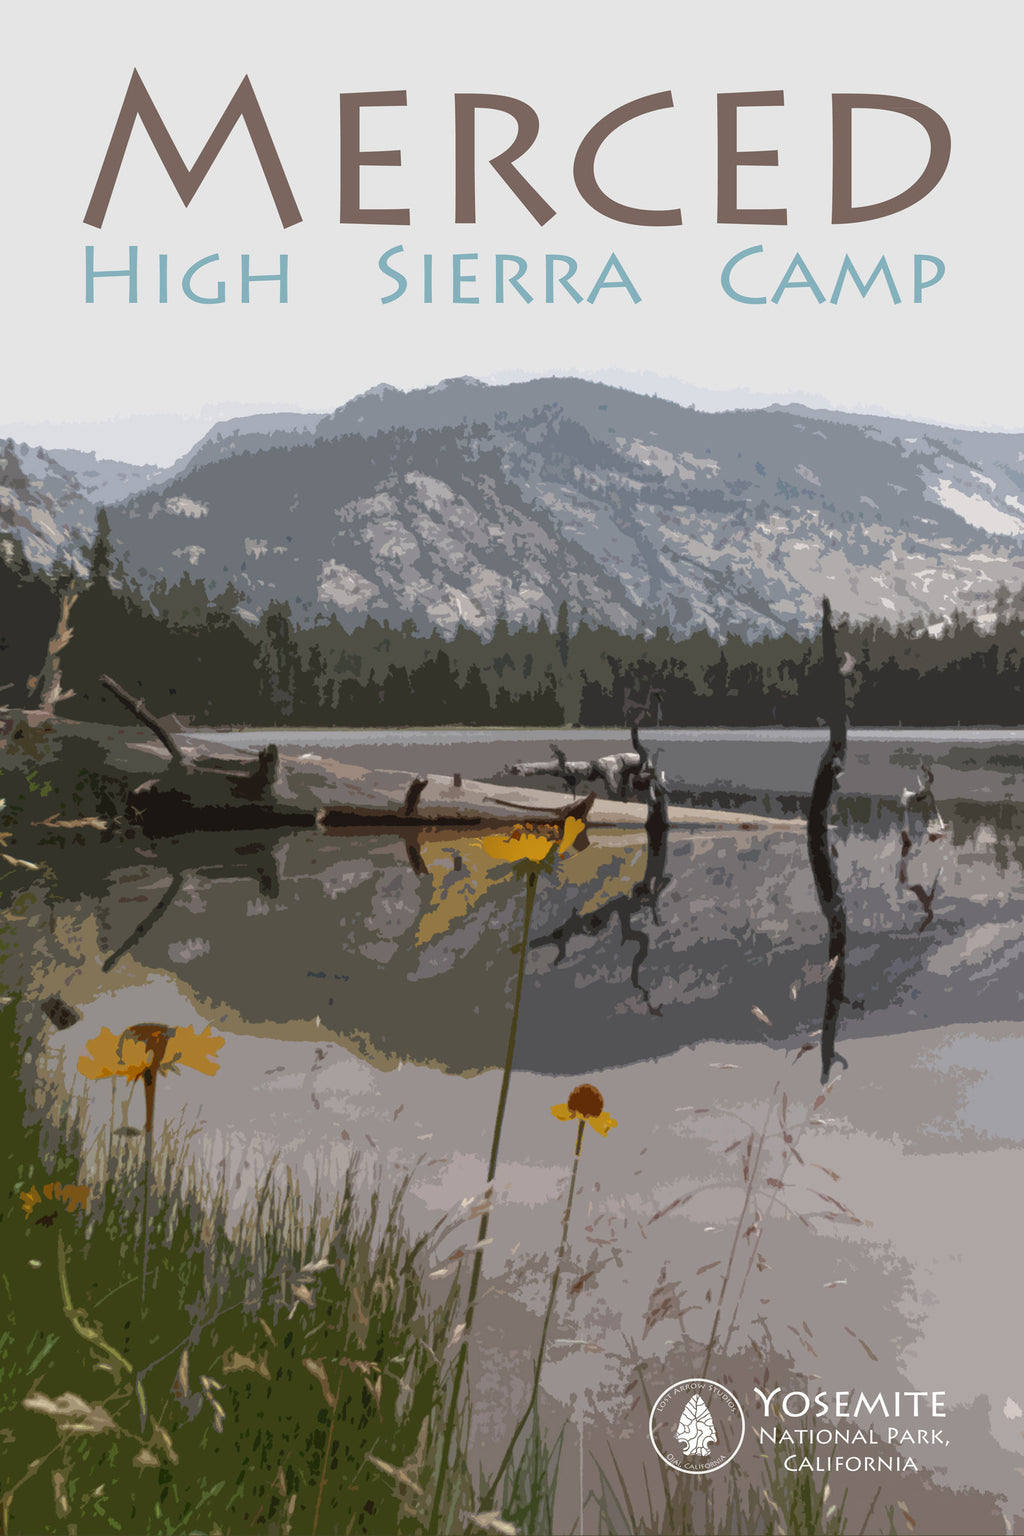 Merced Yosemite High Sierra Camp 12 x 18""